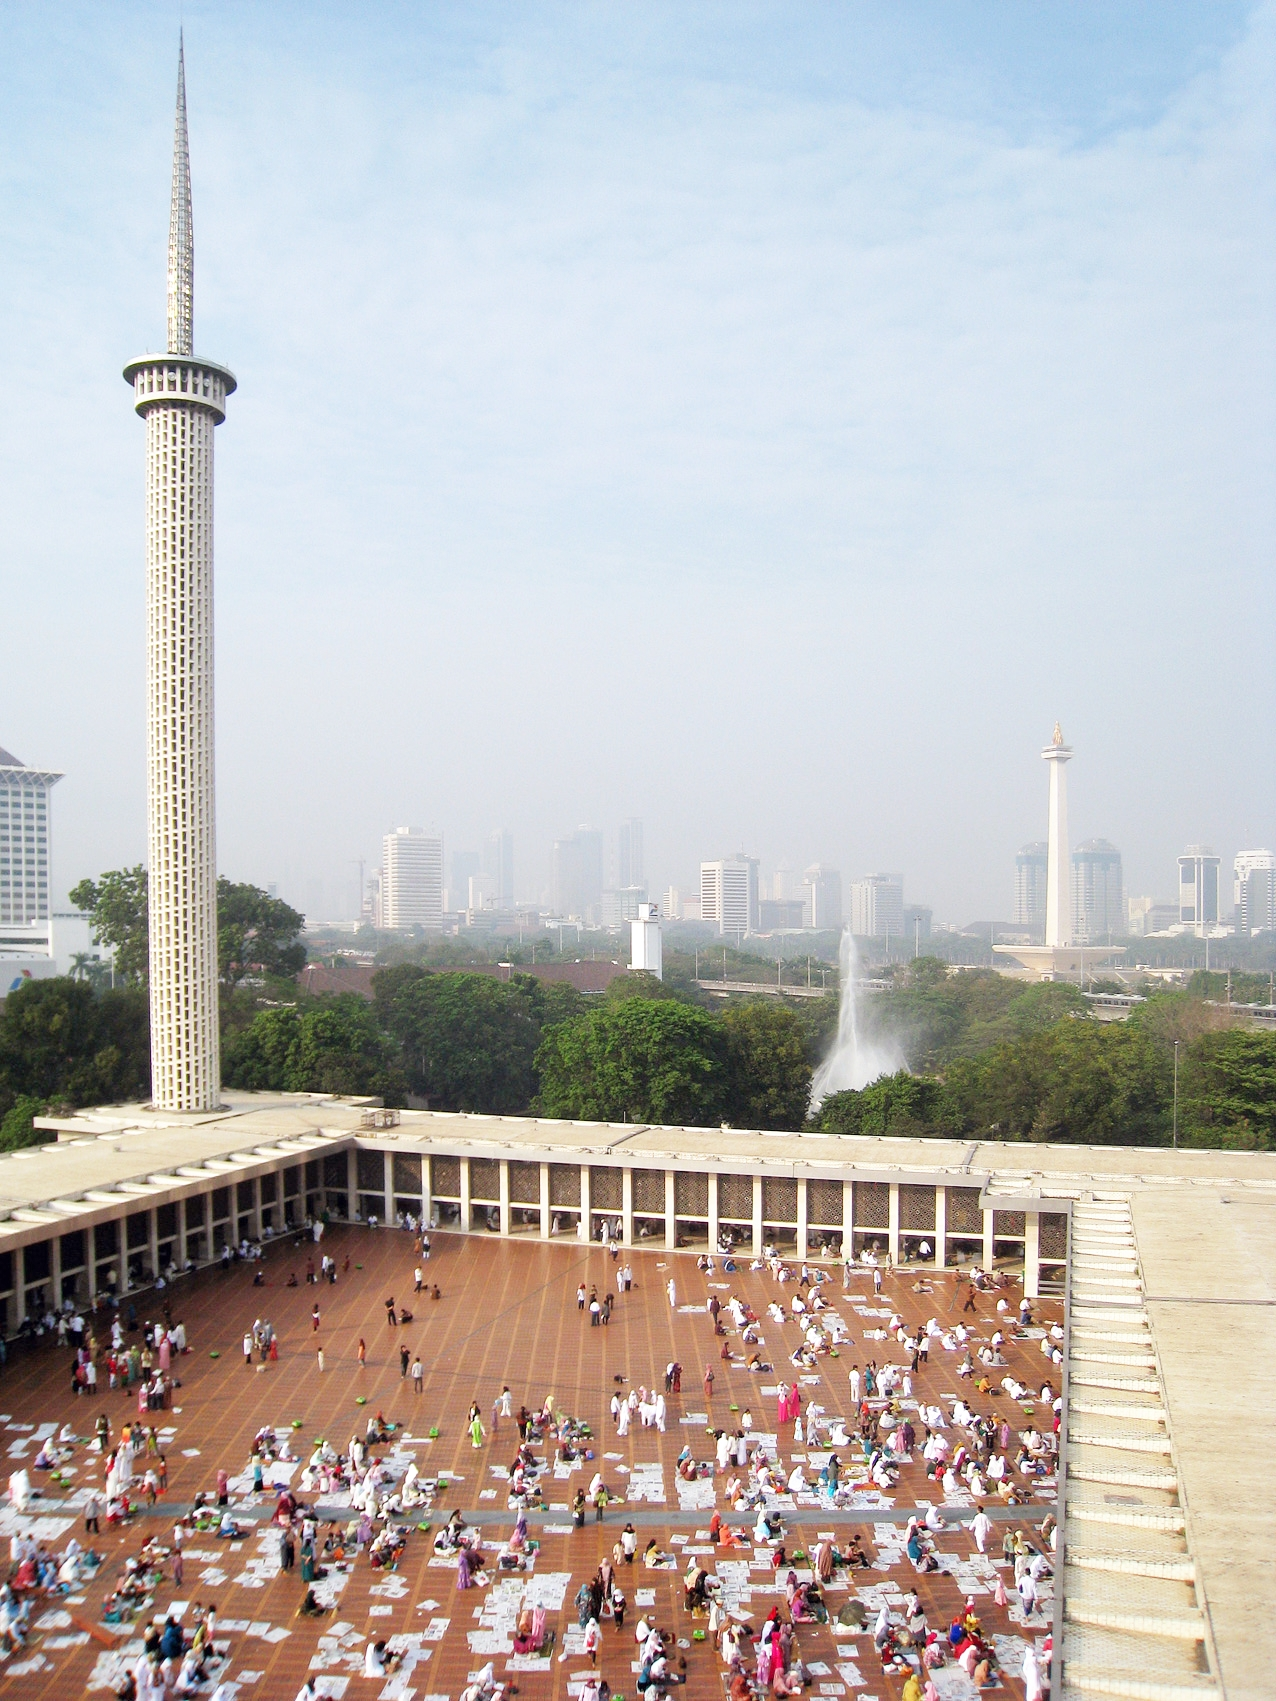 The minaret or tower of Istiqlal Mosque, Jakarta, Indonesia. The National Monument (Monas) and Medan Merdeka Square in the background with Jakarta skyline.